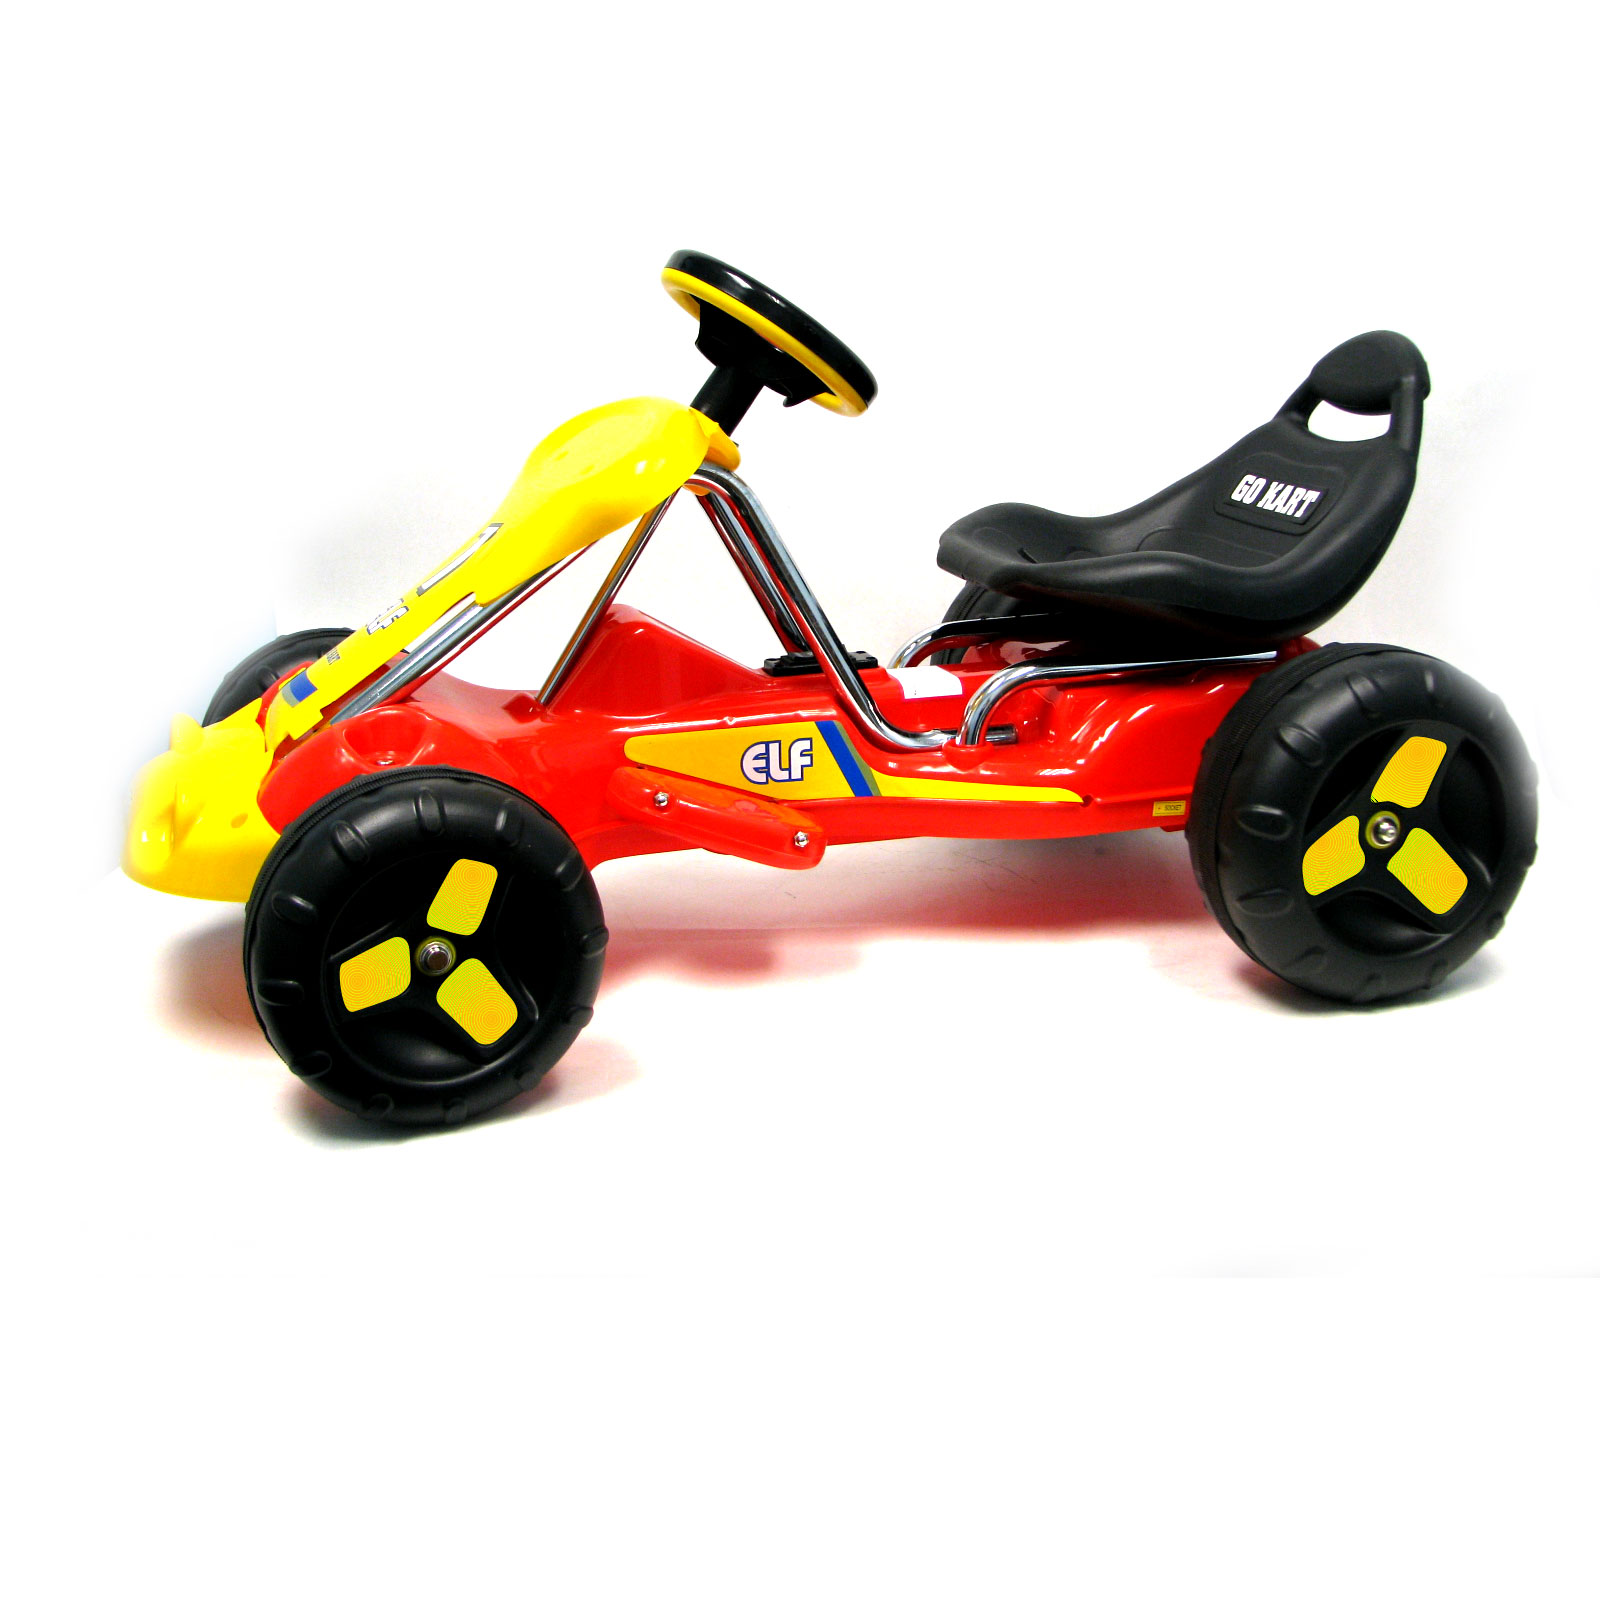 Lil' Rider Ride On Toy Go Kart, Battery Powered Ride On T...